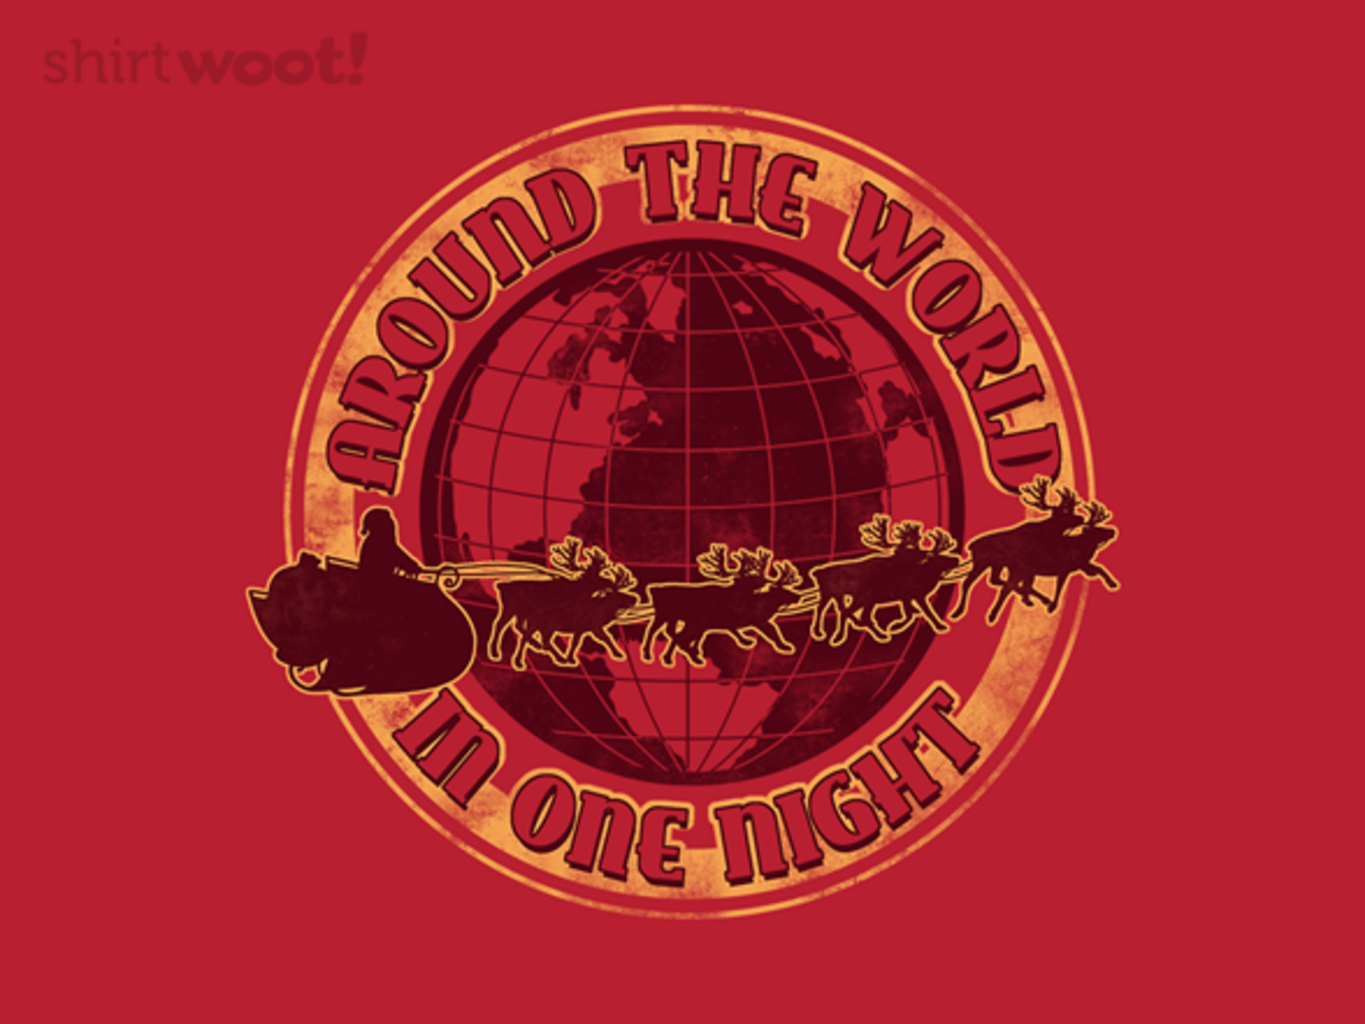 Woot!: Around the World In One Night - $8.00 + $5 standard shipping